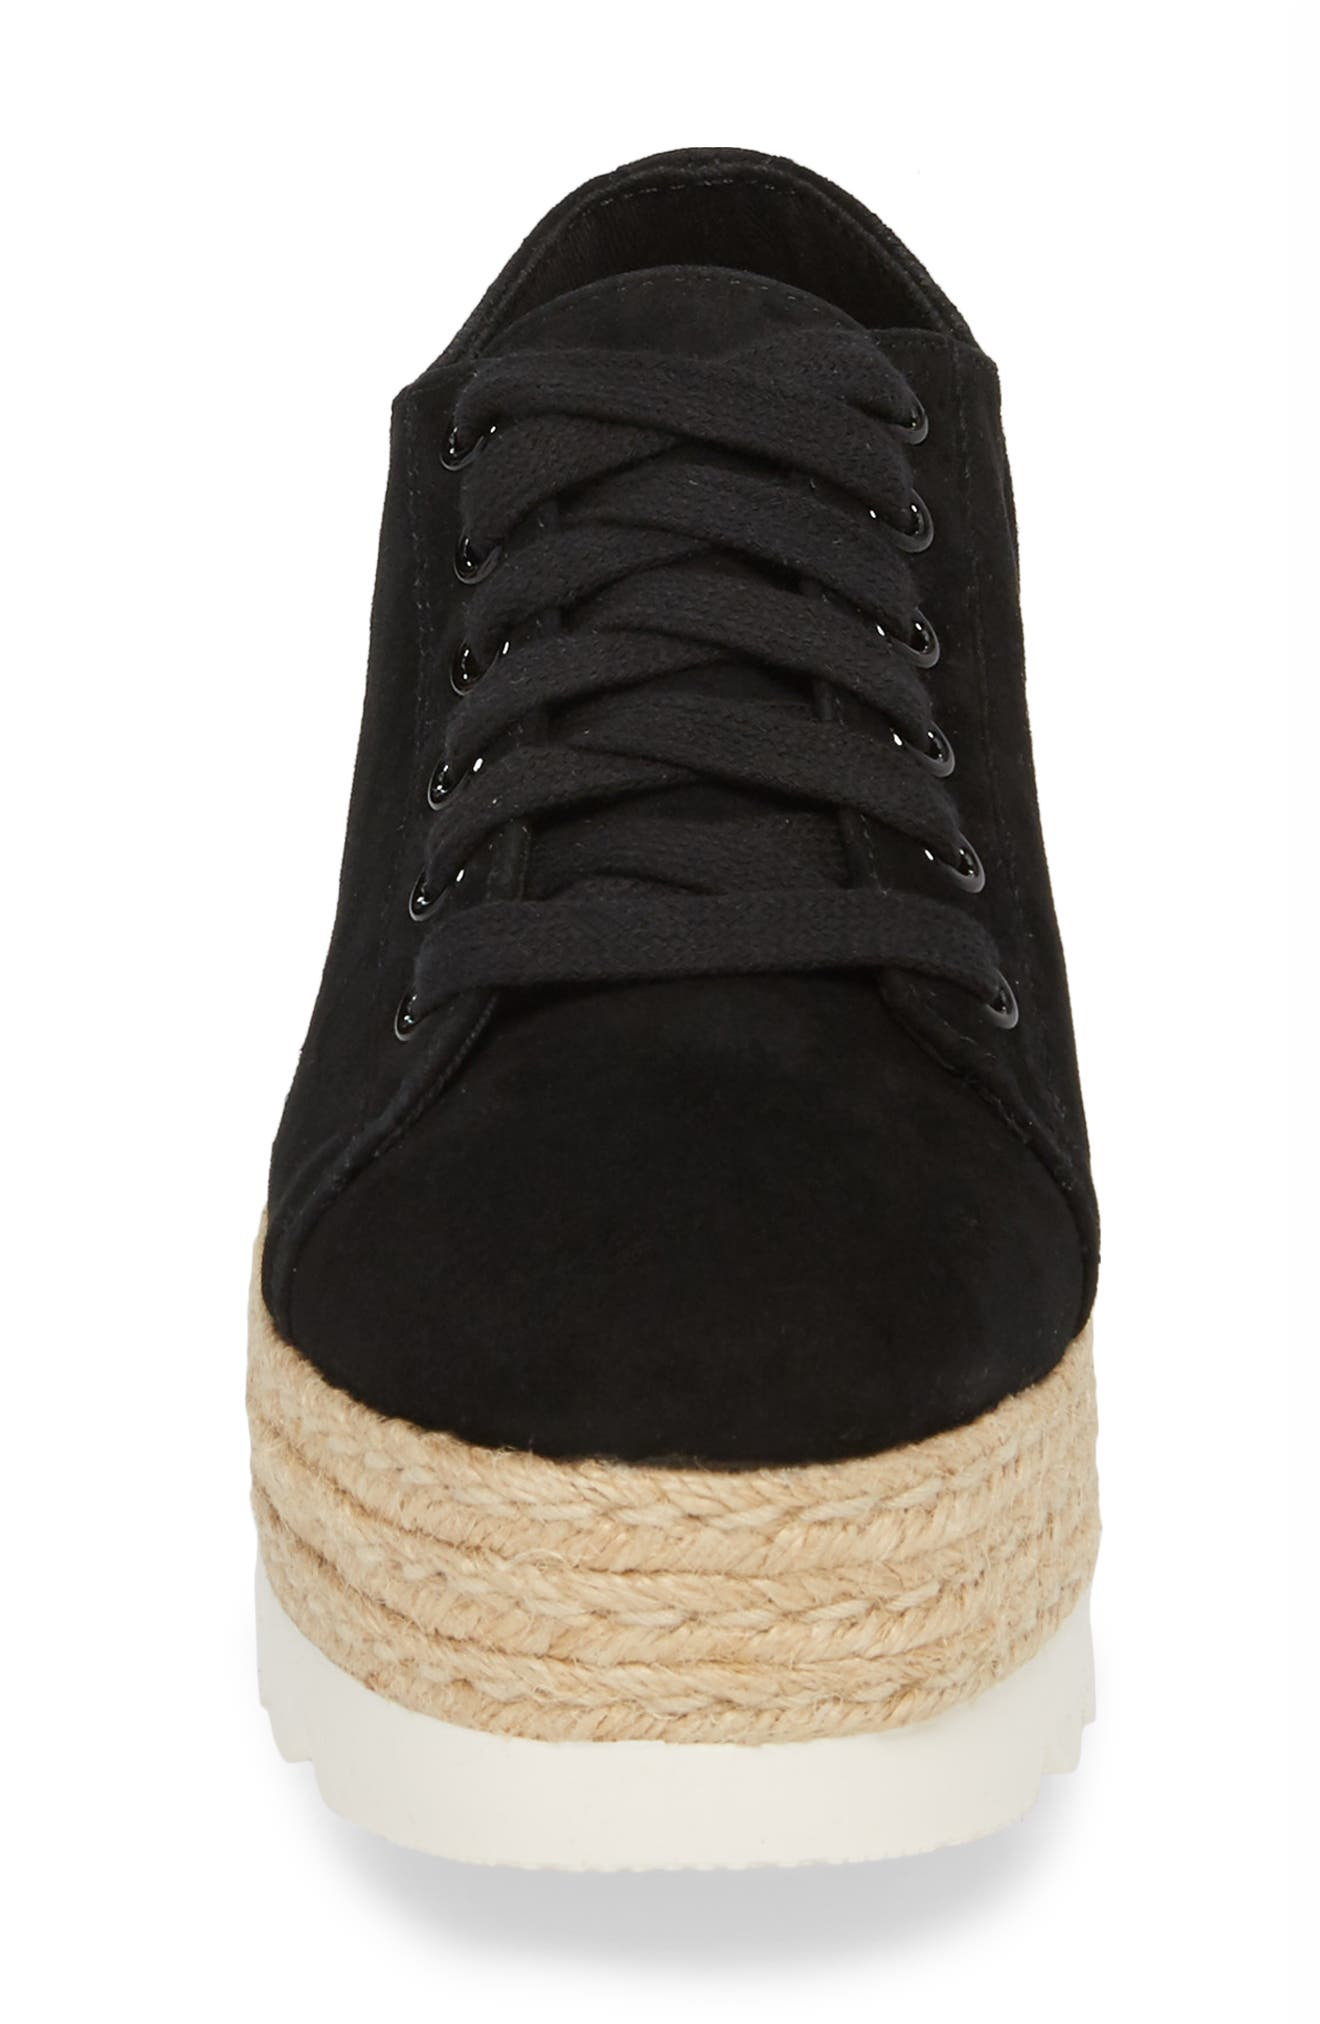 Karma Espadrille Platform Sneaker,                             Alternate thumbnail 4, color,                             006